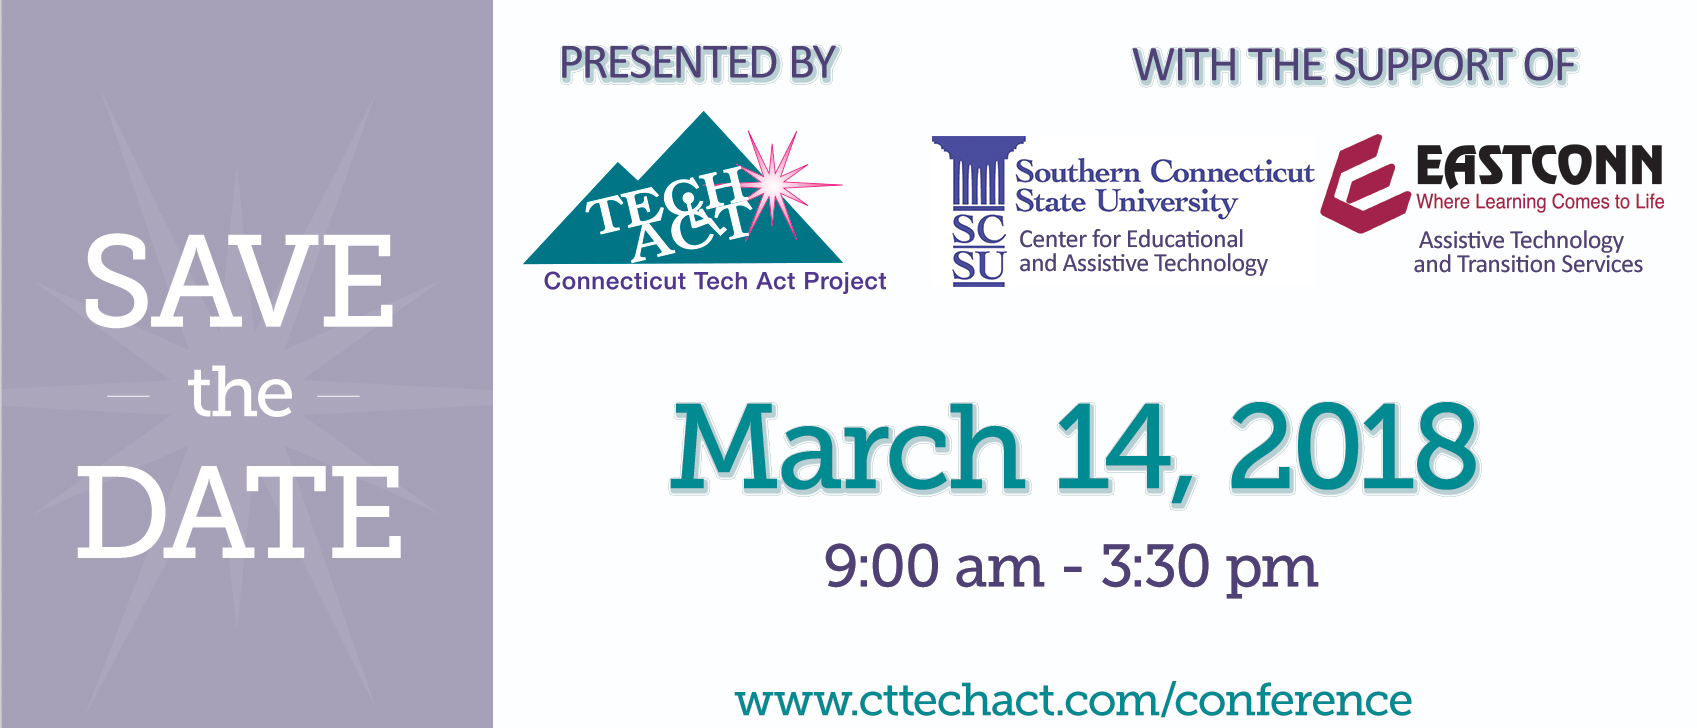 Achievement Through Technology Conference presented by CT Tech Act Project with the support of Southern Connecticut State University Center for Educational and Assistive Technology & EastCONN Center for Educational and Assistive Technology. Save the date: March 14, 2018 9:00am-3:30pm